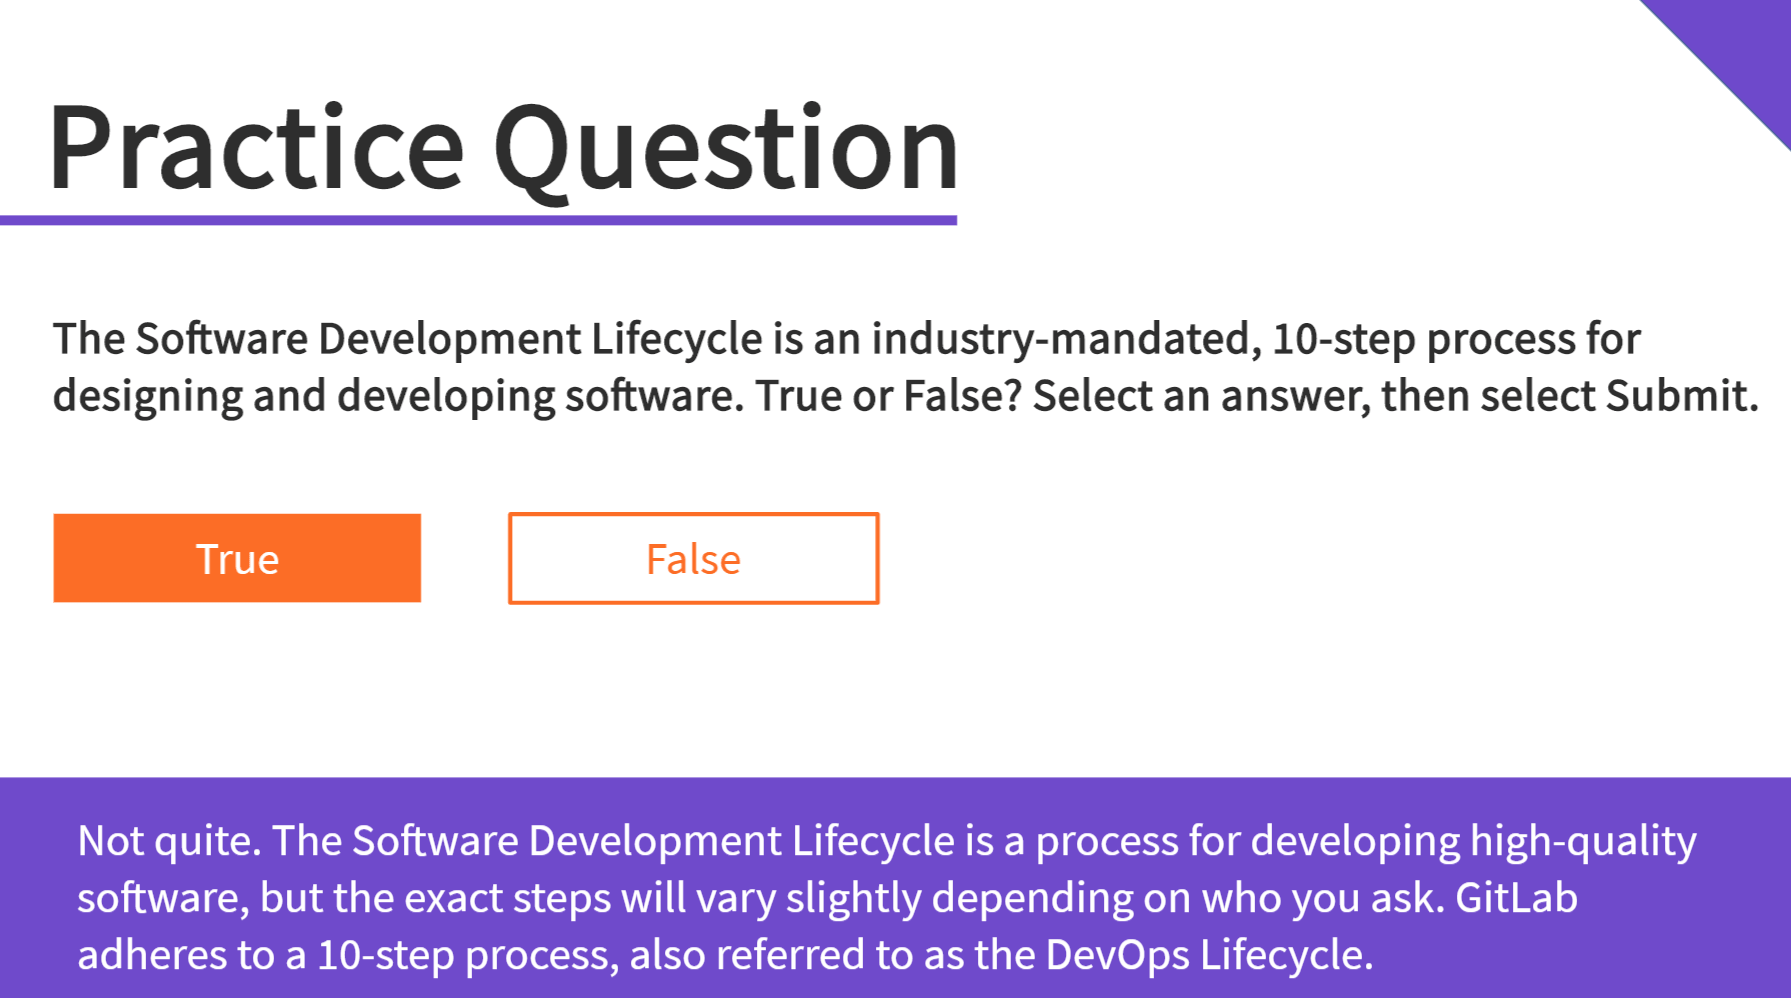 GitLab practice question eLearning screenshot